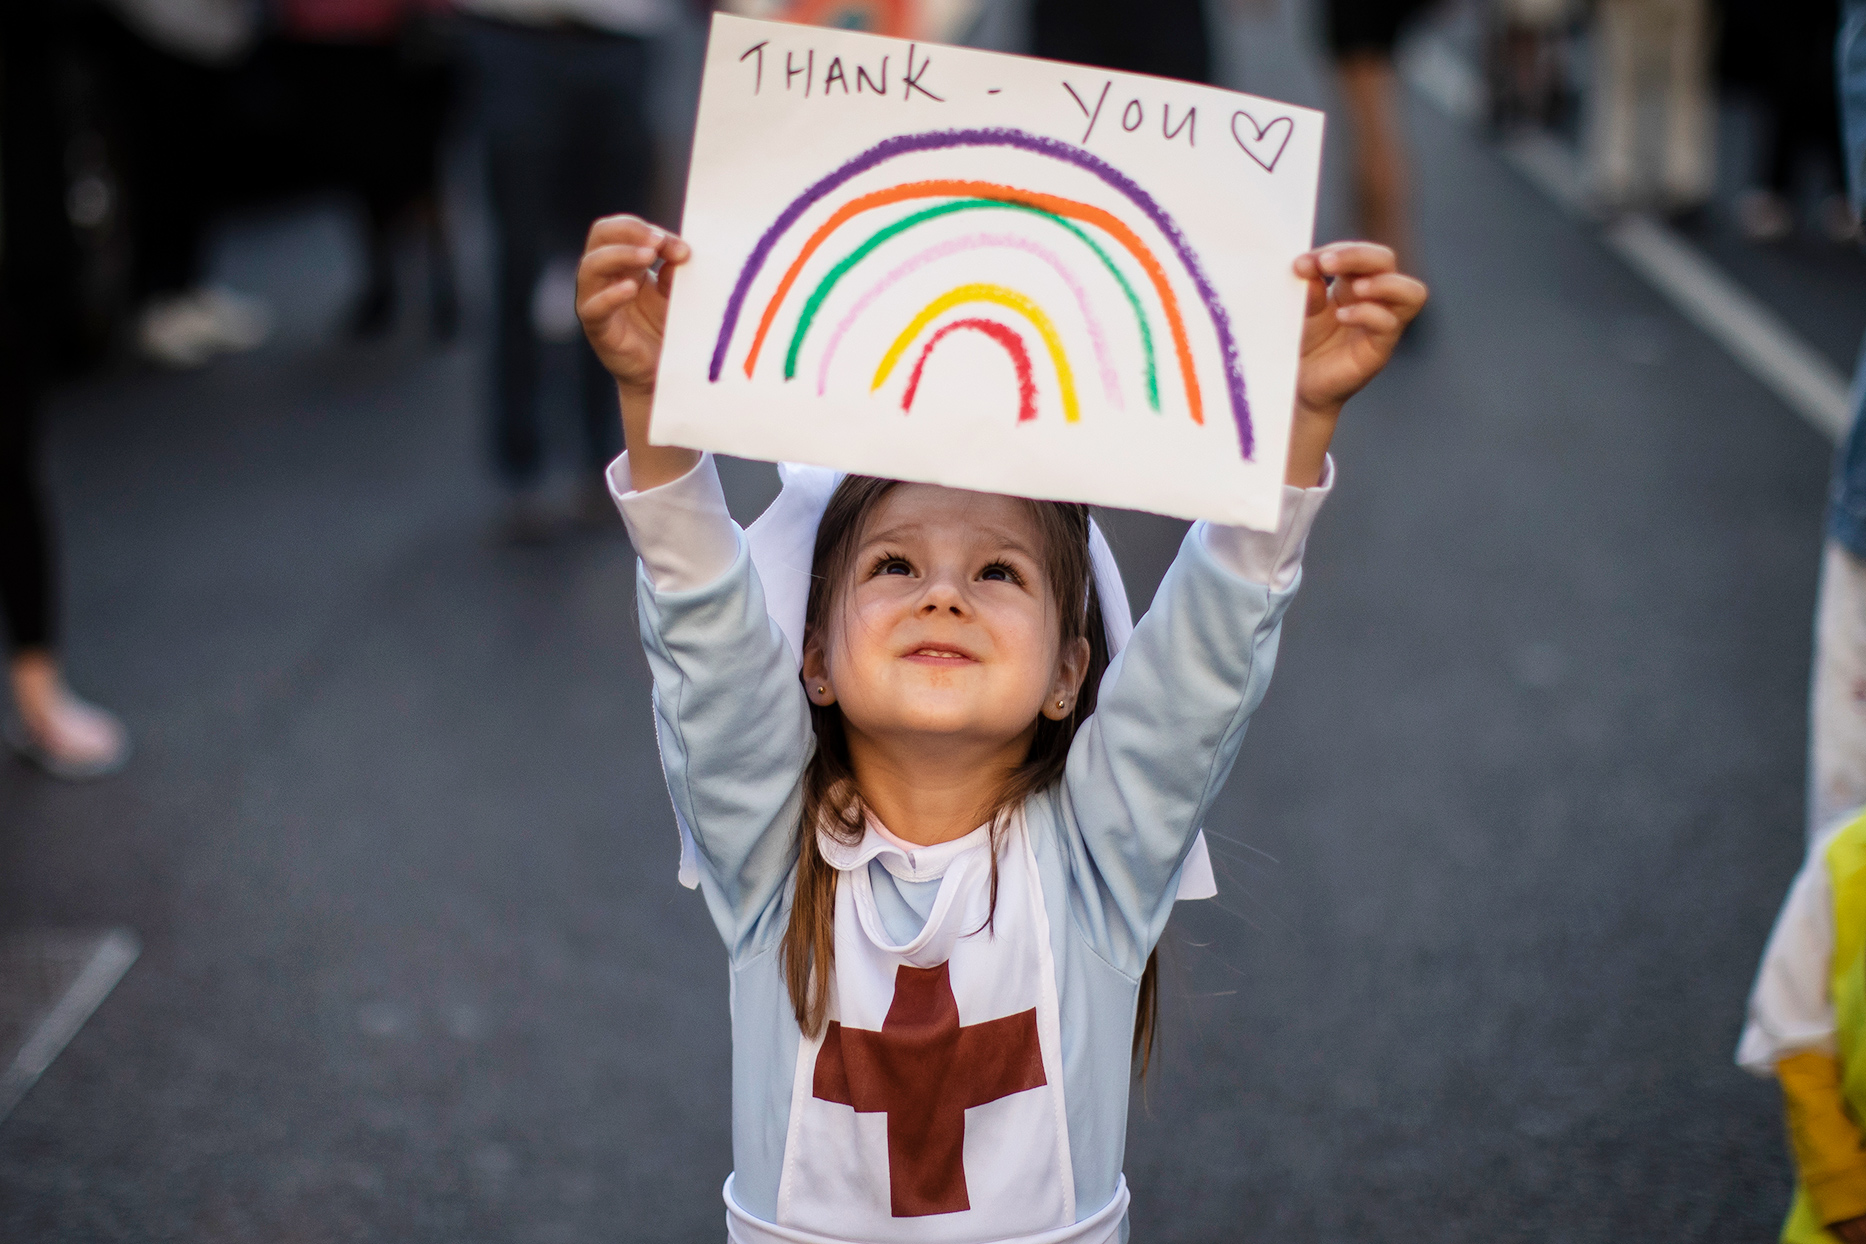 girl holding sign that says thank you